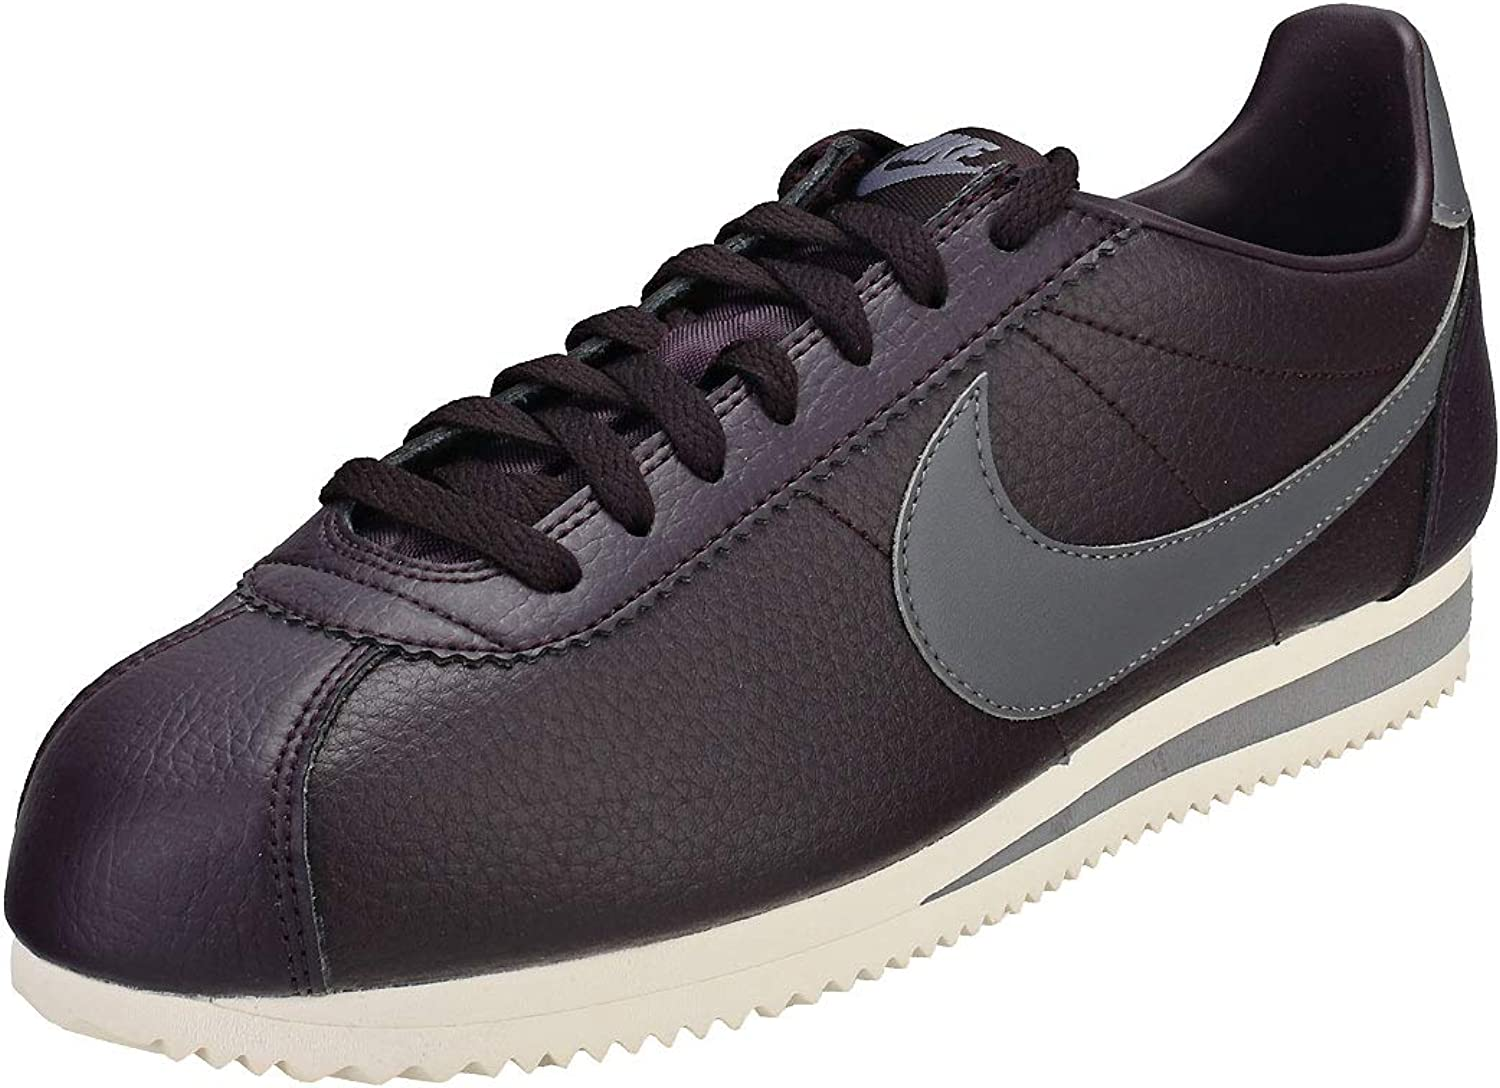 Nike Classic Cortez Leather Mens Trainers 749571 Sneakers shoes